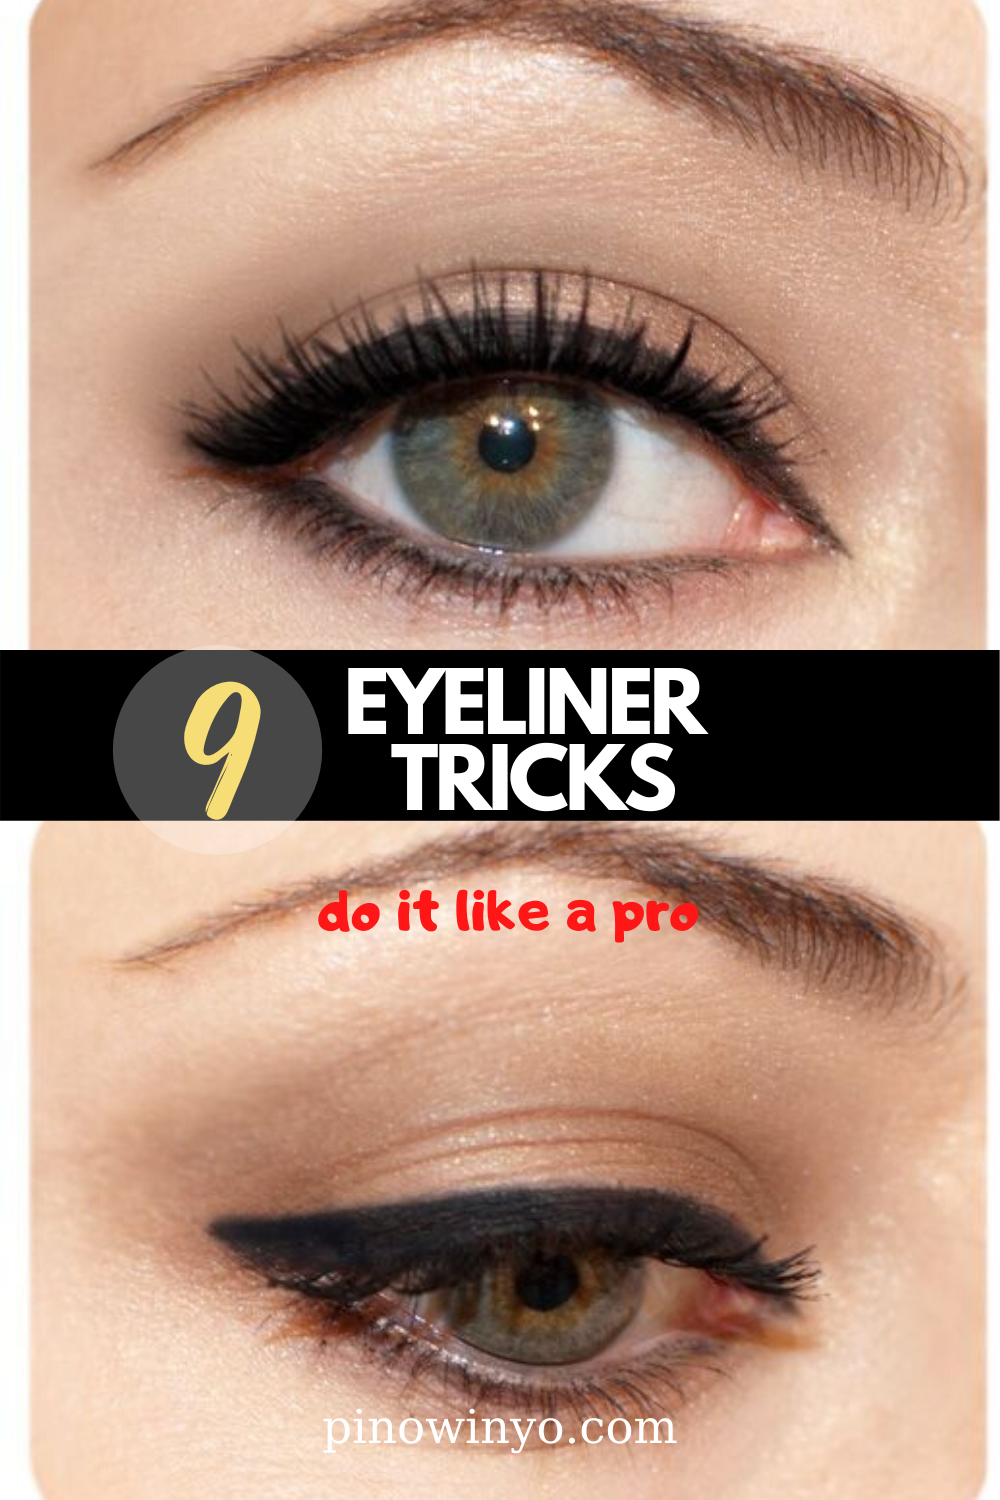 10 Eyeliner Tricks that Nobody Knows  Do it Like a Pro in 10